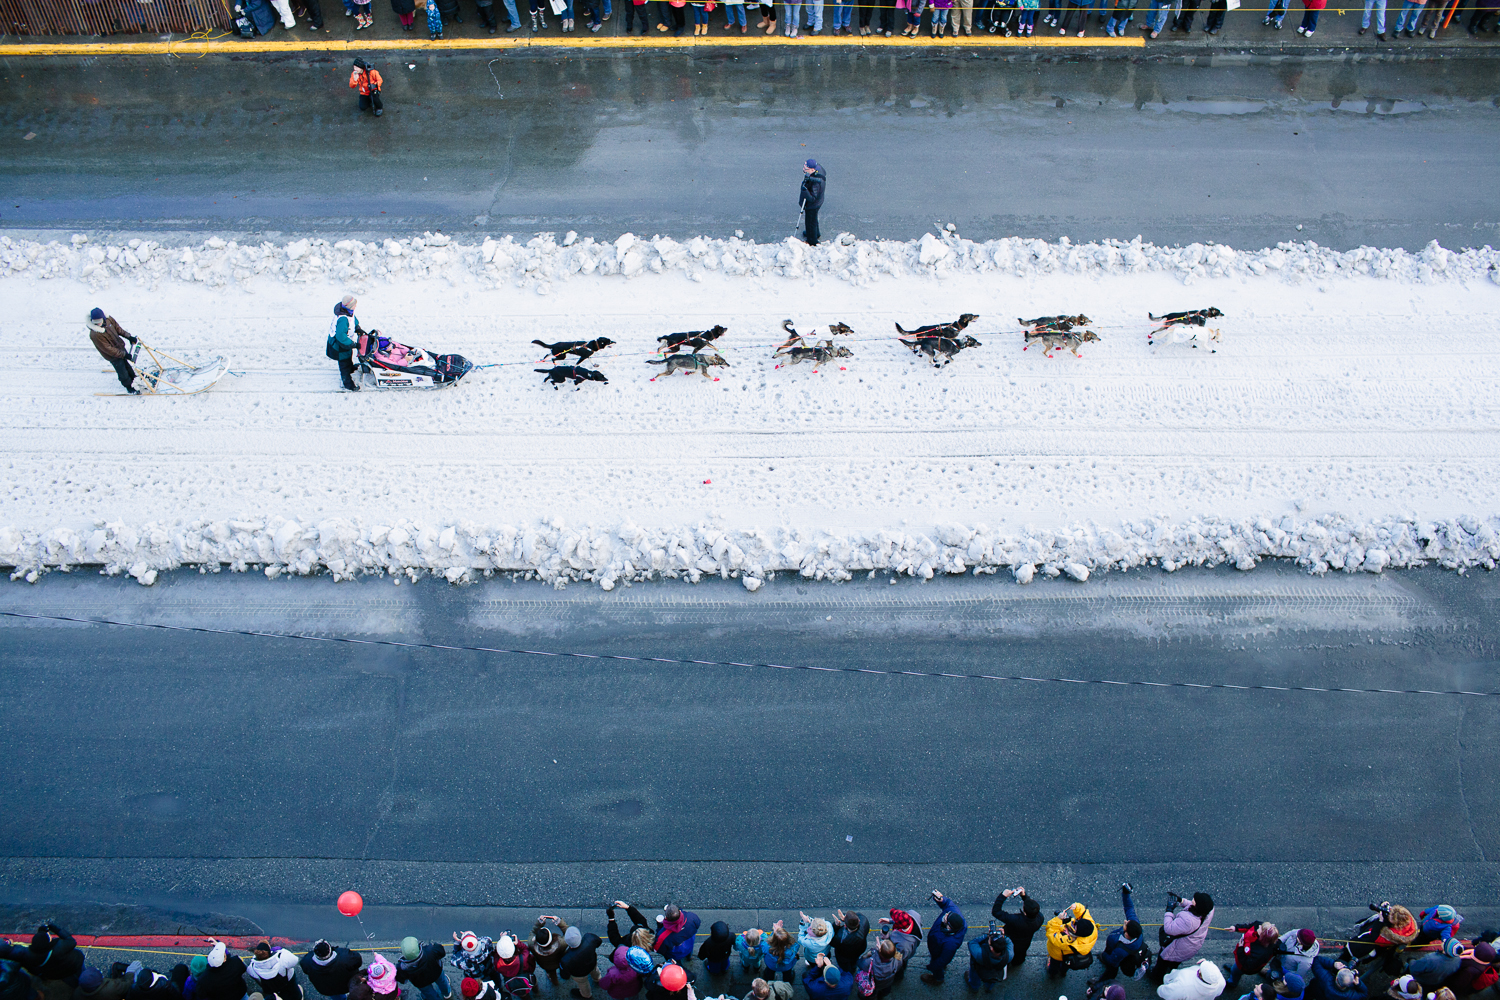 Jodi Bailey of Fairbanks mushes down Fourth Avenue in Anchorage Alaska at the Iditarod's Ceremonial Start on March 7, 2015. Snow was brought in by trucks to accomodate the race due to lack of snowfall.